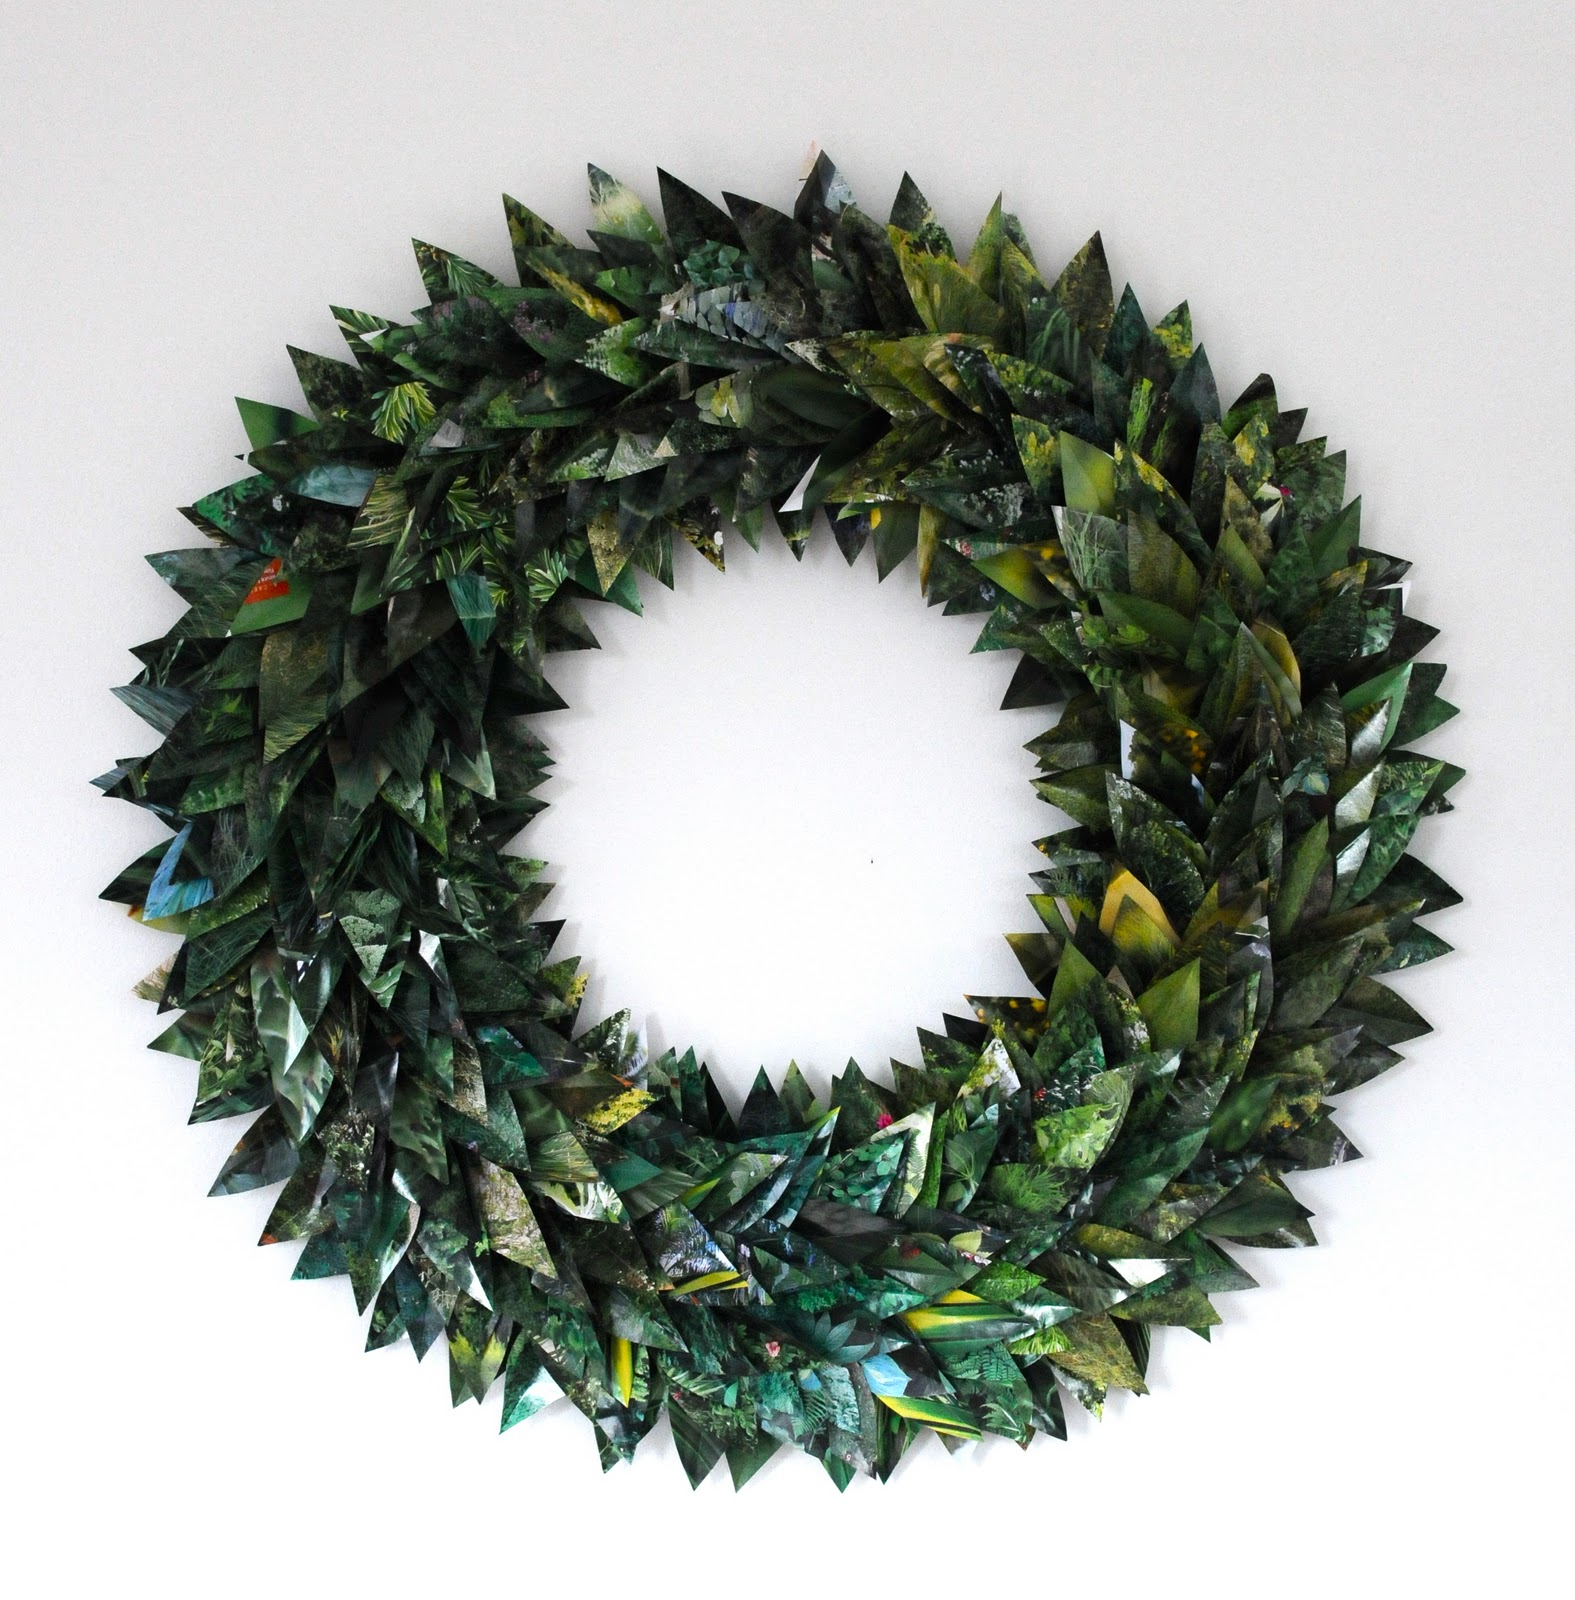 Diy 7 festive holiday wreaths made from upcycled Making wreaths